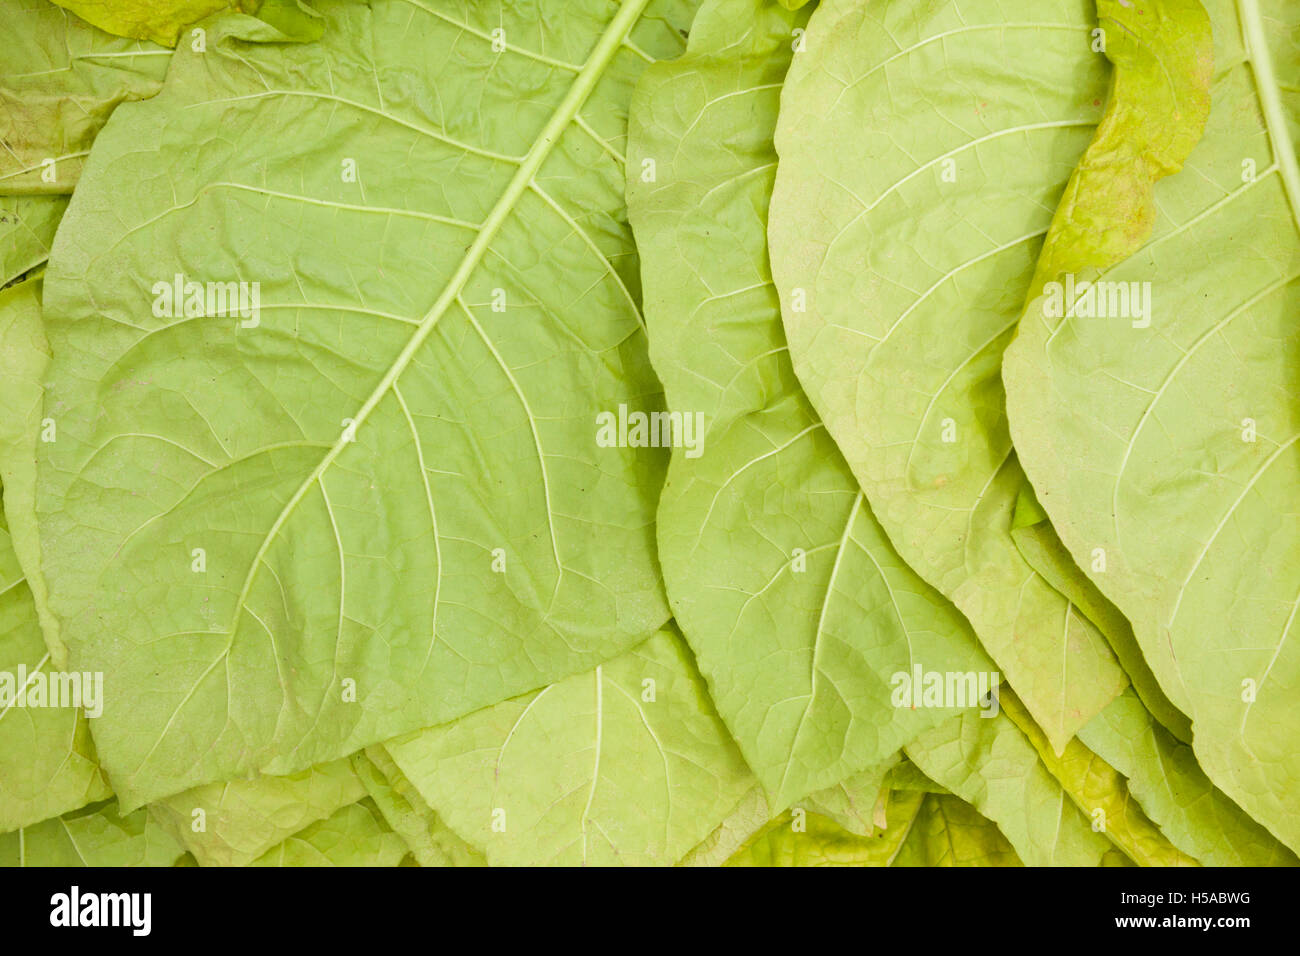 green tobacco leaves or natural background - Stock Image